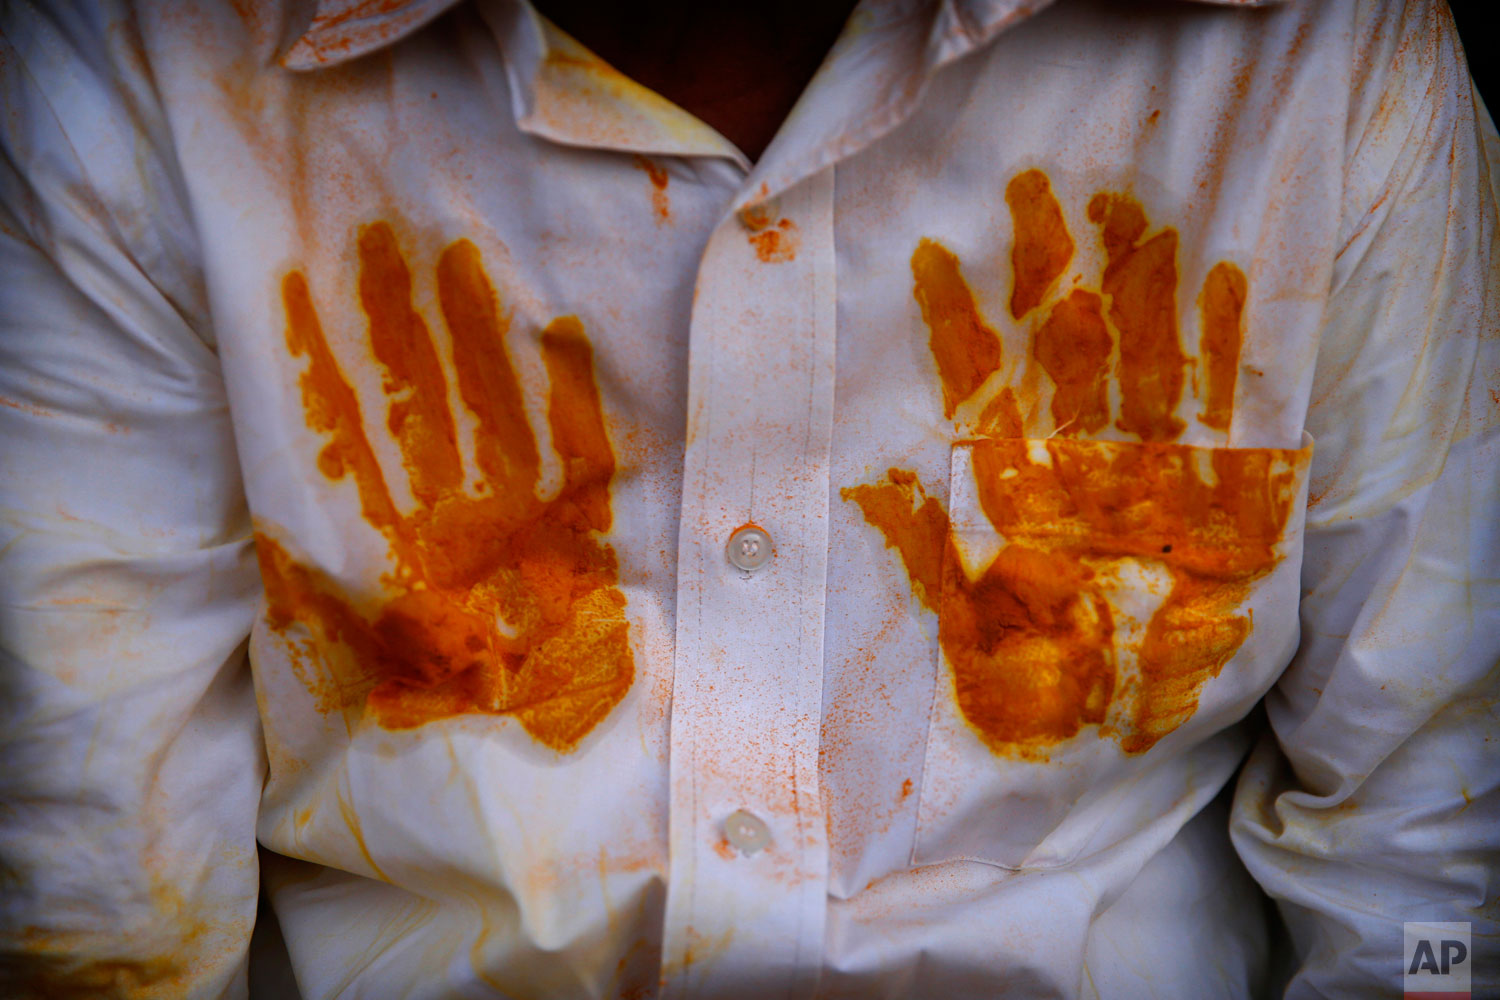 A devotee's shirt has handprints of the spice turmeric during the celebration of the Bhandara Festival, or the Festival of Turmeric, at the Jejuri temple in Pune district, Maharashtra state, India. During the festival, devotees use the golden powder to worship the deity Lord Khandoba, widely known as a descendant of the sun, and to celebrate his victory over the demons Mani and Malla. (AP Photo/Rafiq Maqbool)